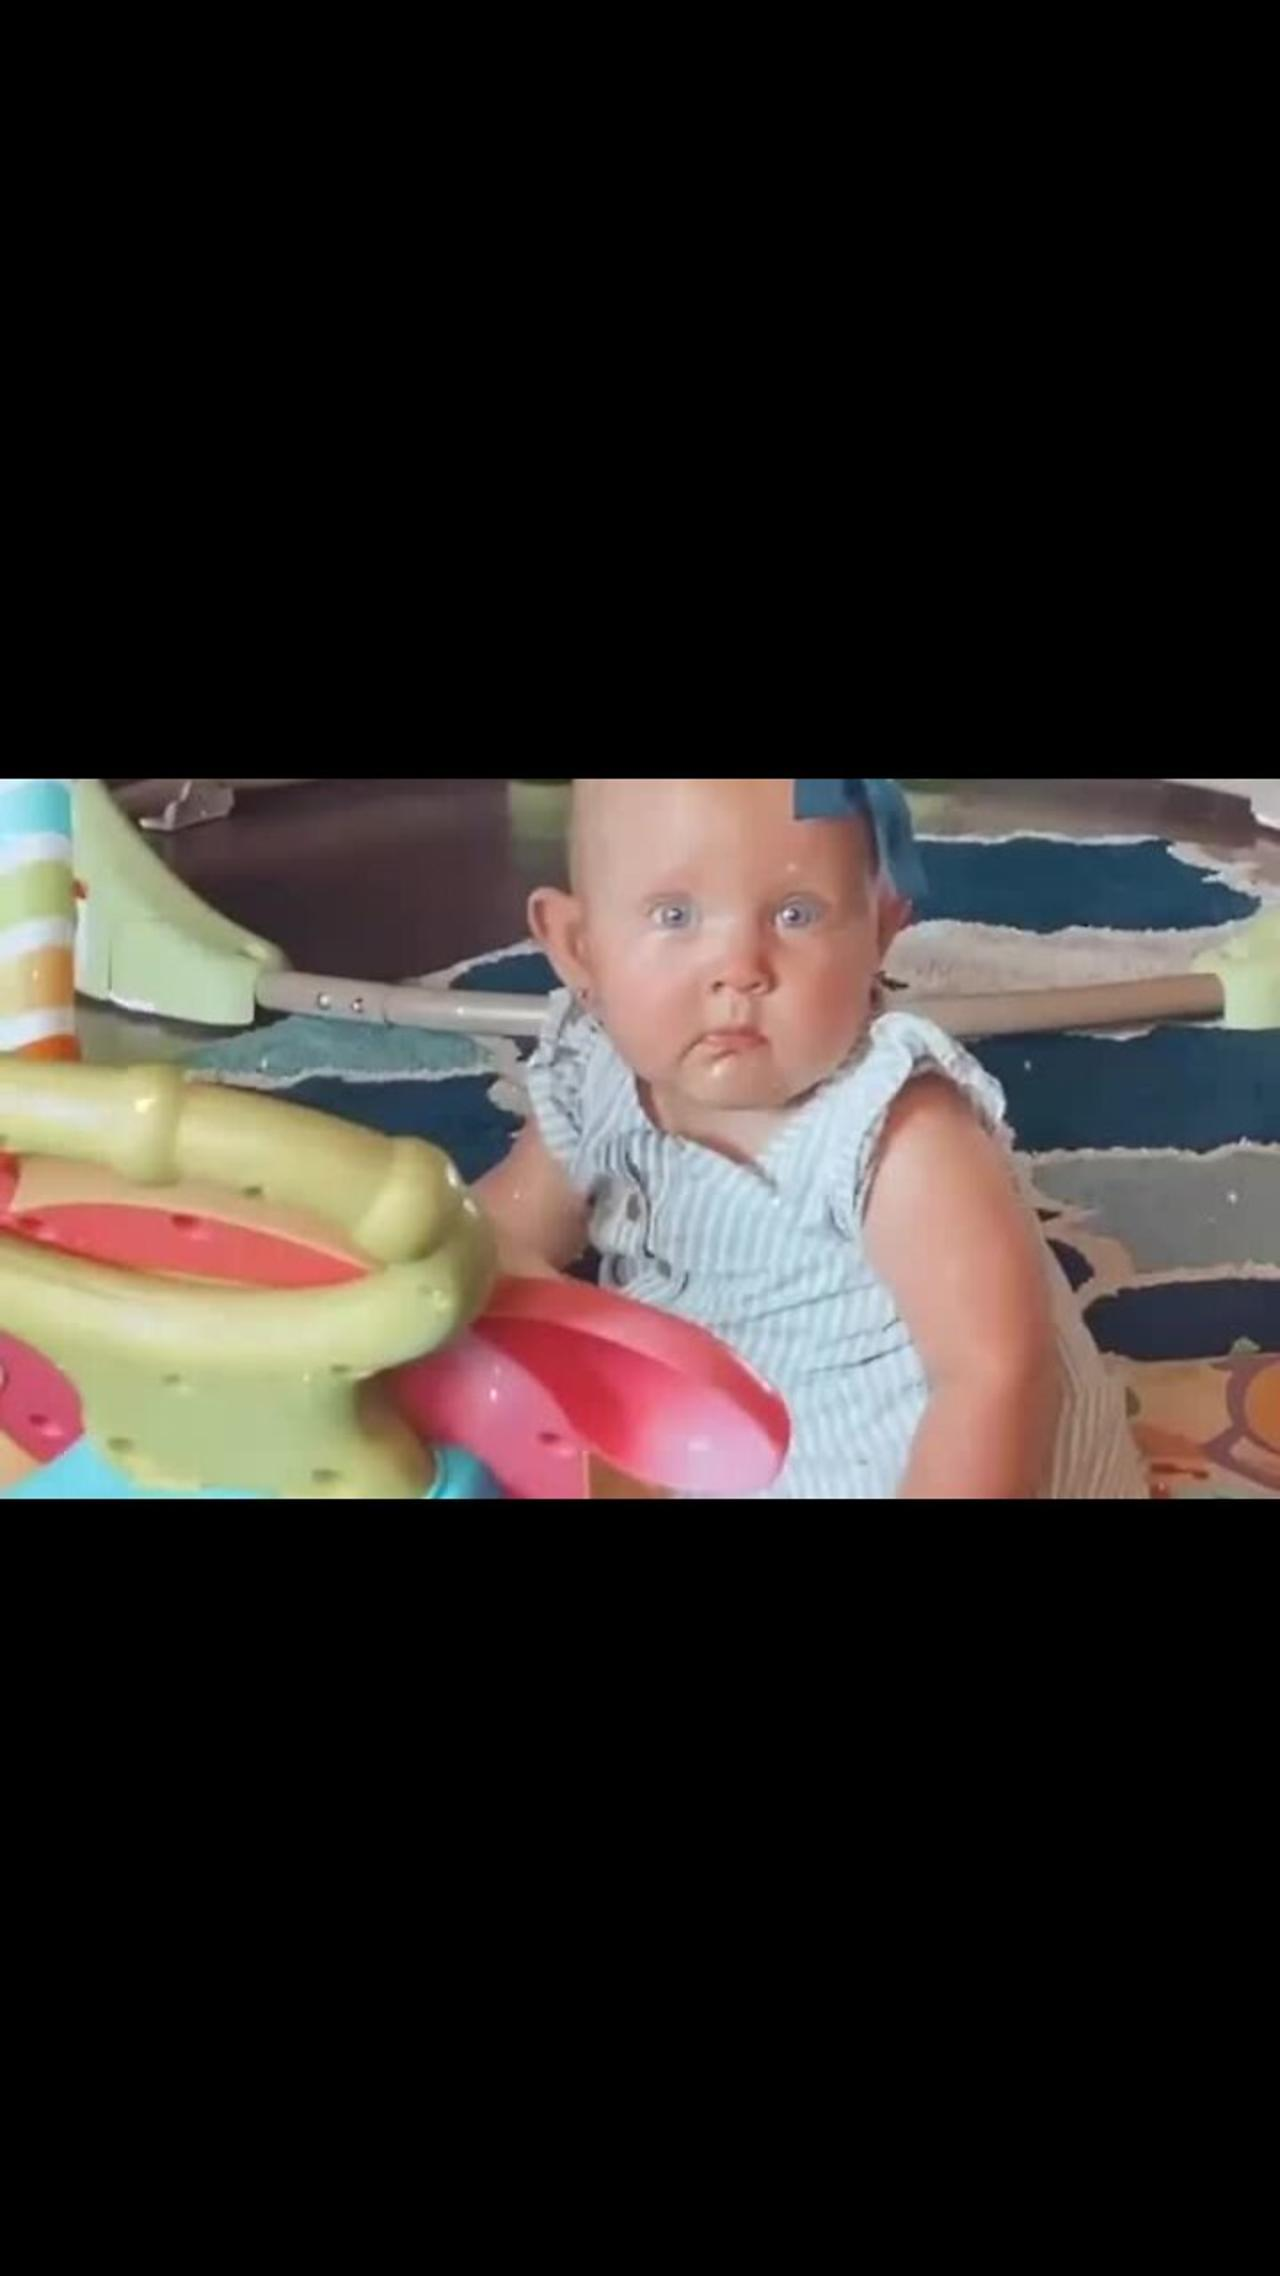 Baby goes from terrified to overjoyed when mom starts singing